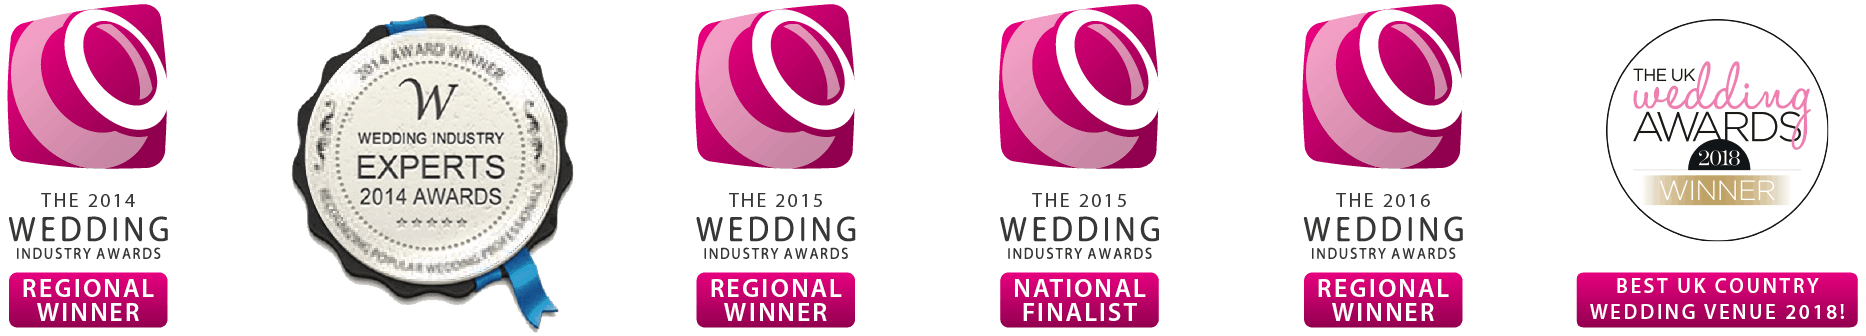 An award winning place to have your wedding